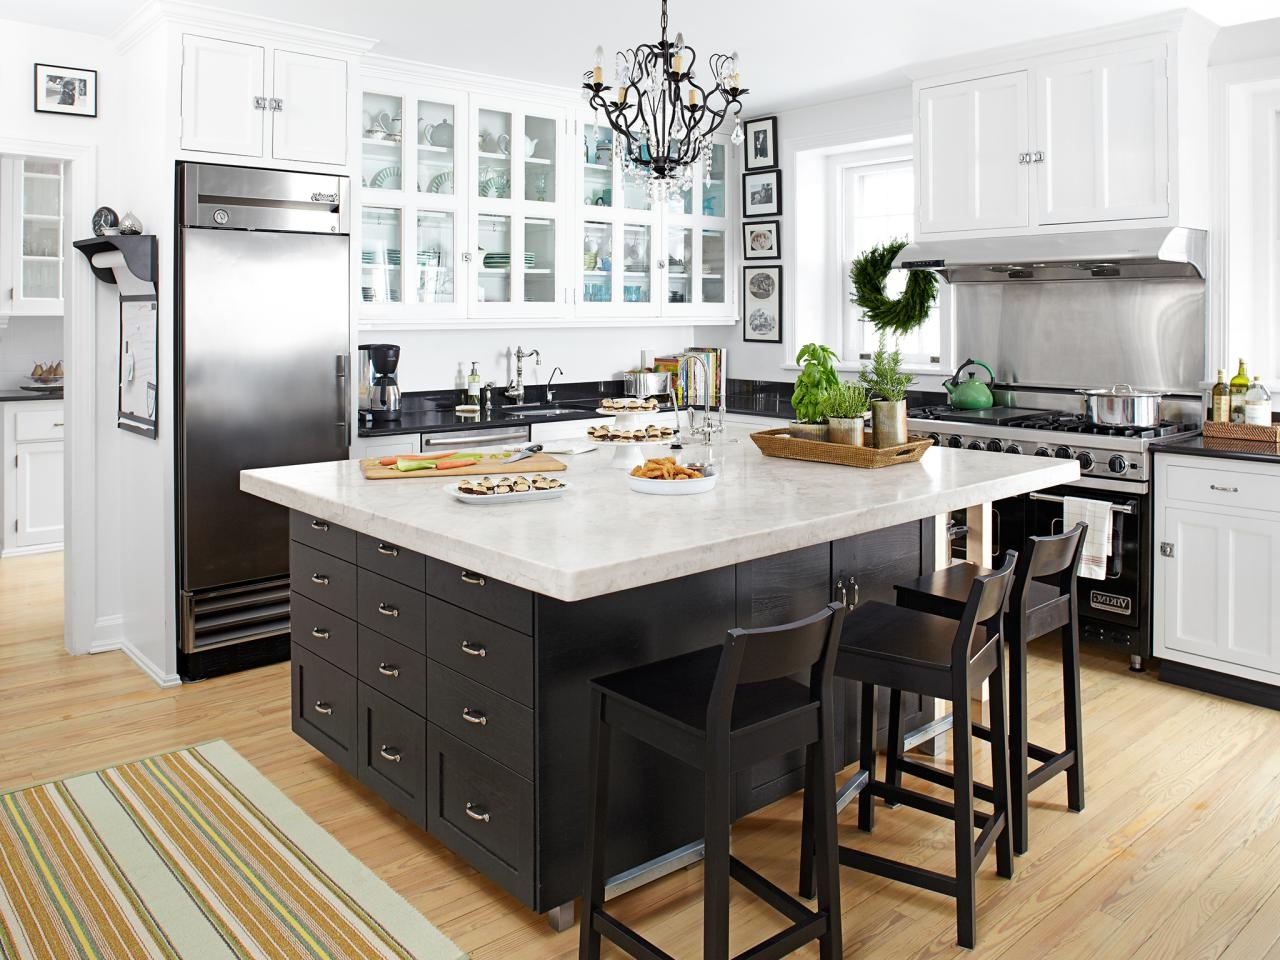 60 Kitchen Island Ideas Leaven Up Your Cookery